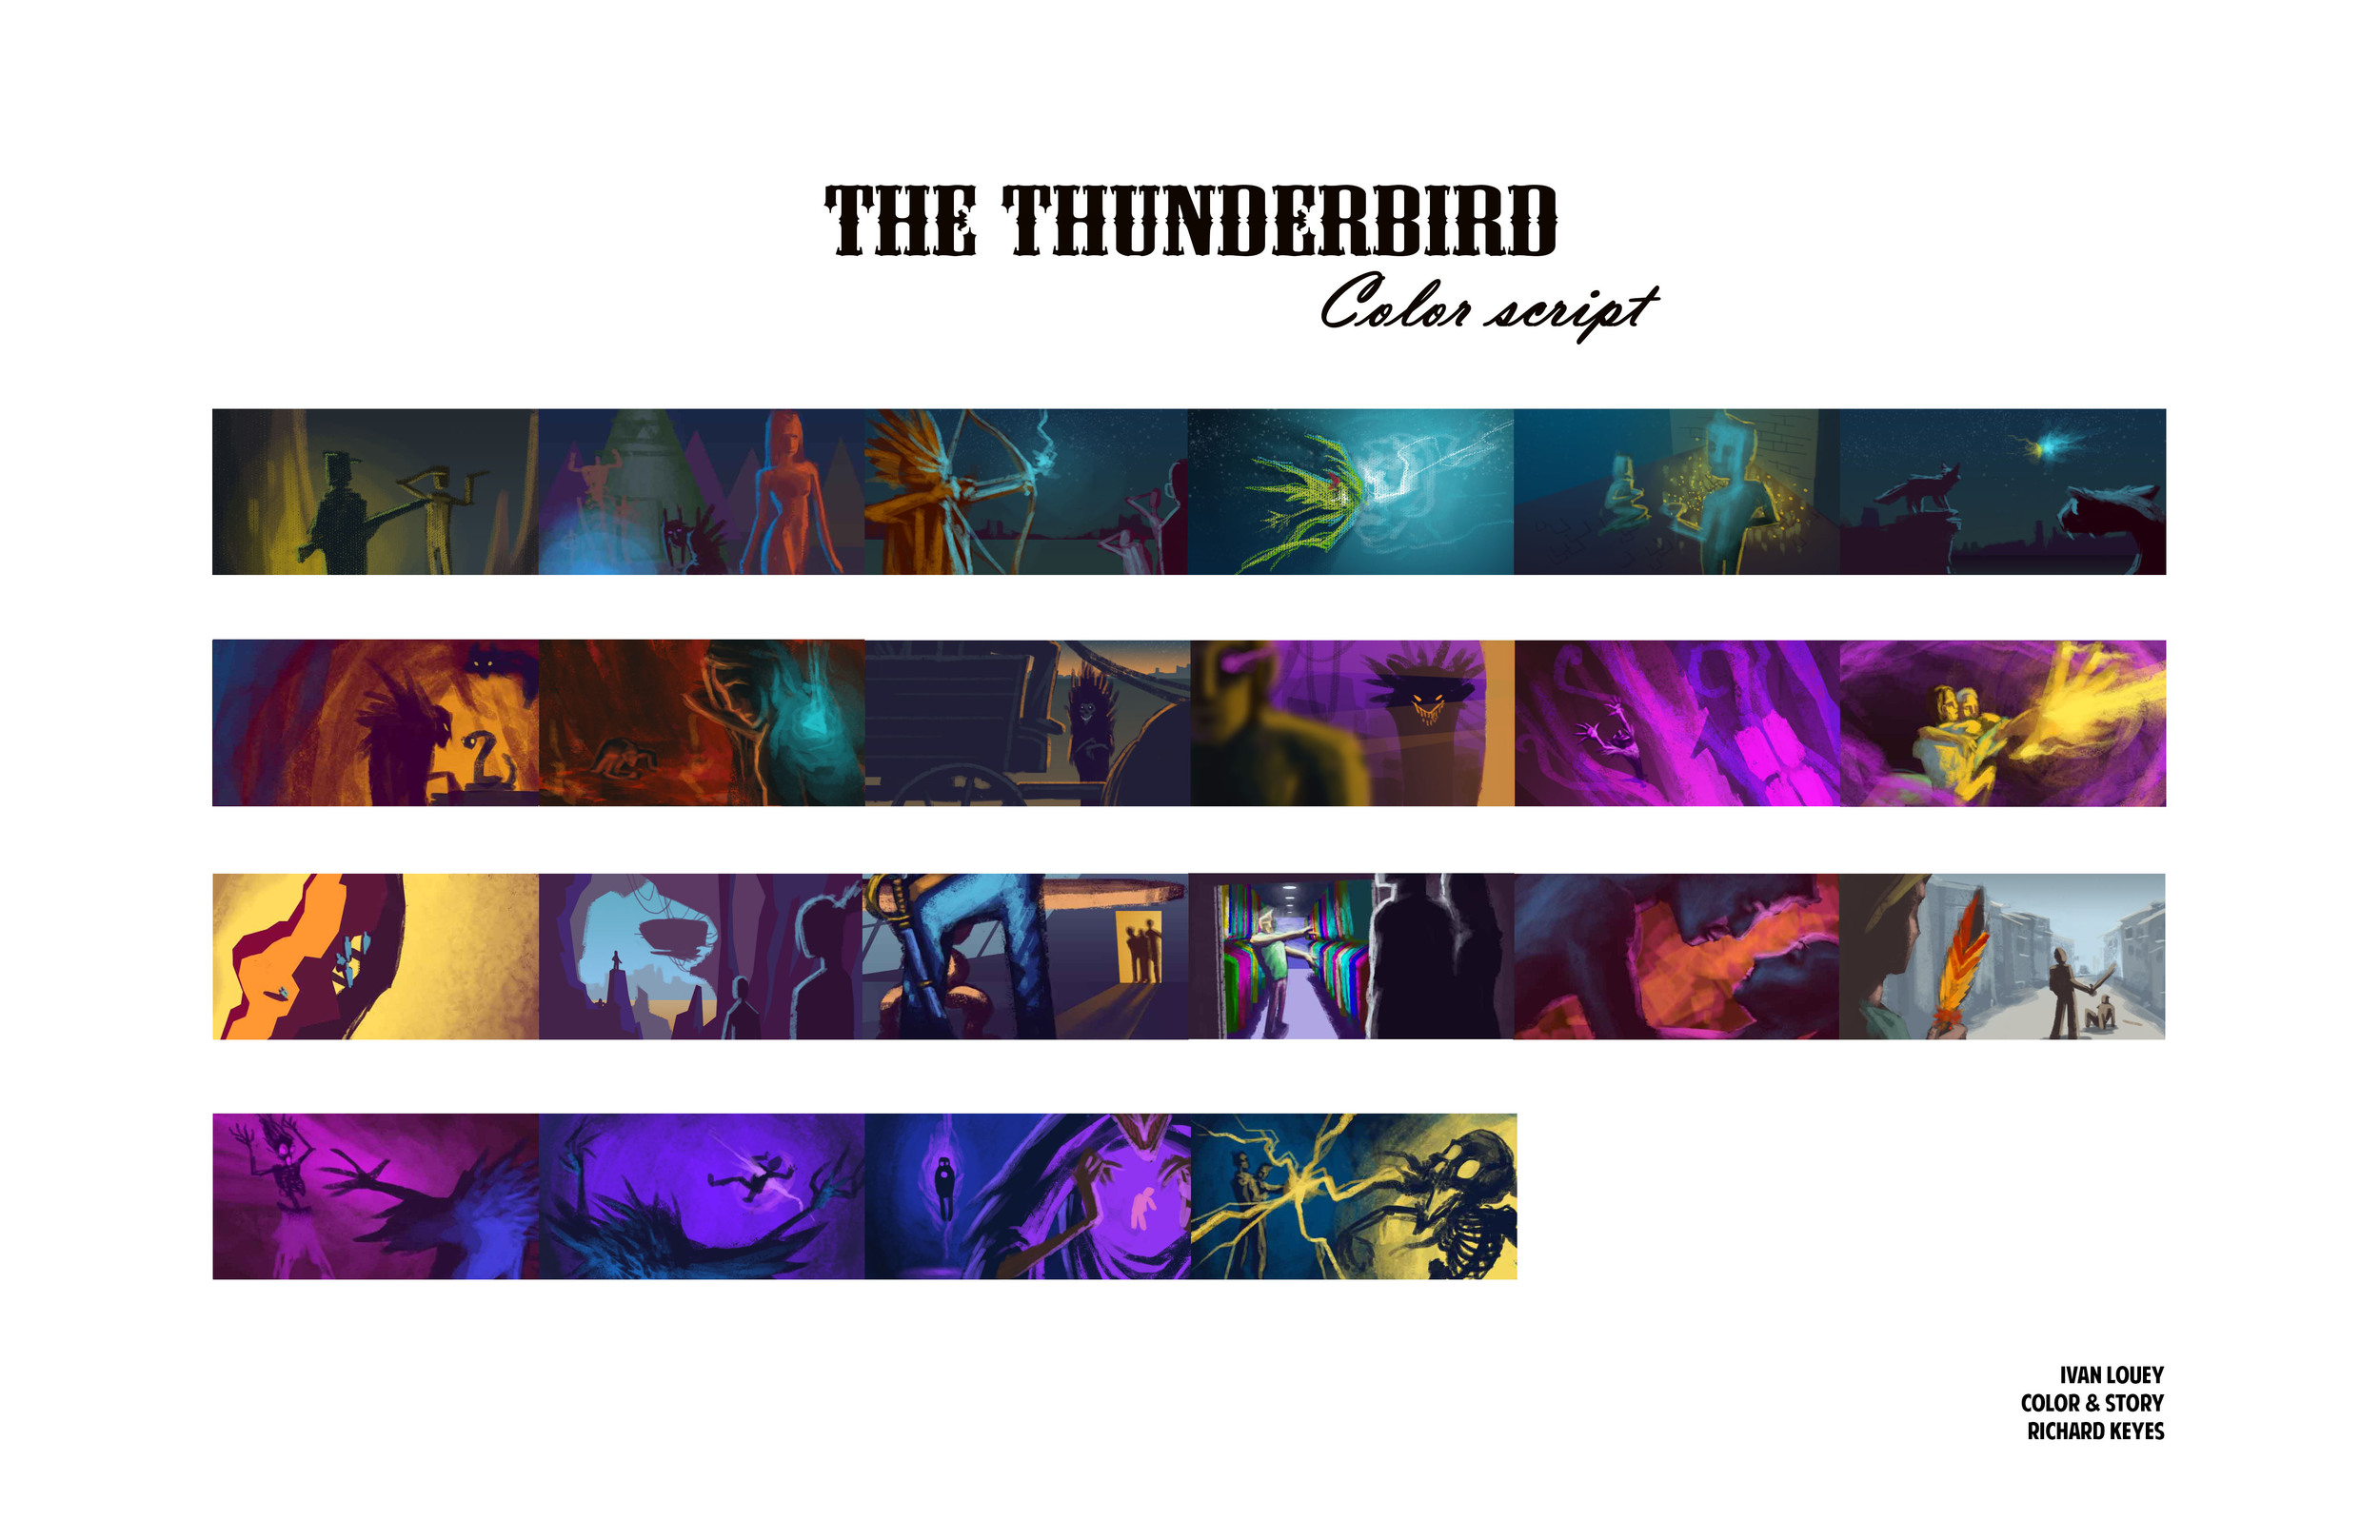 Colorscript for The Thunderbird